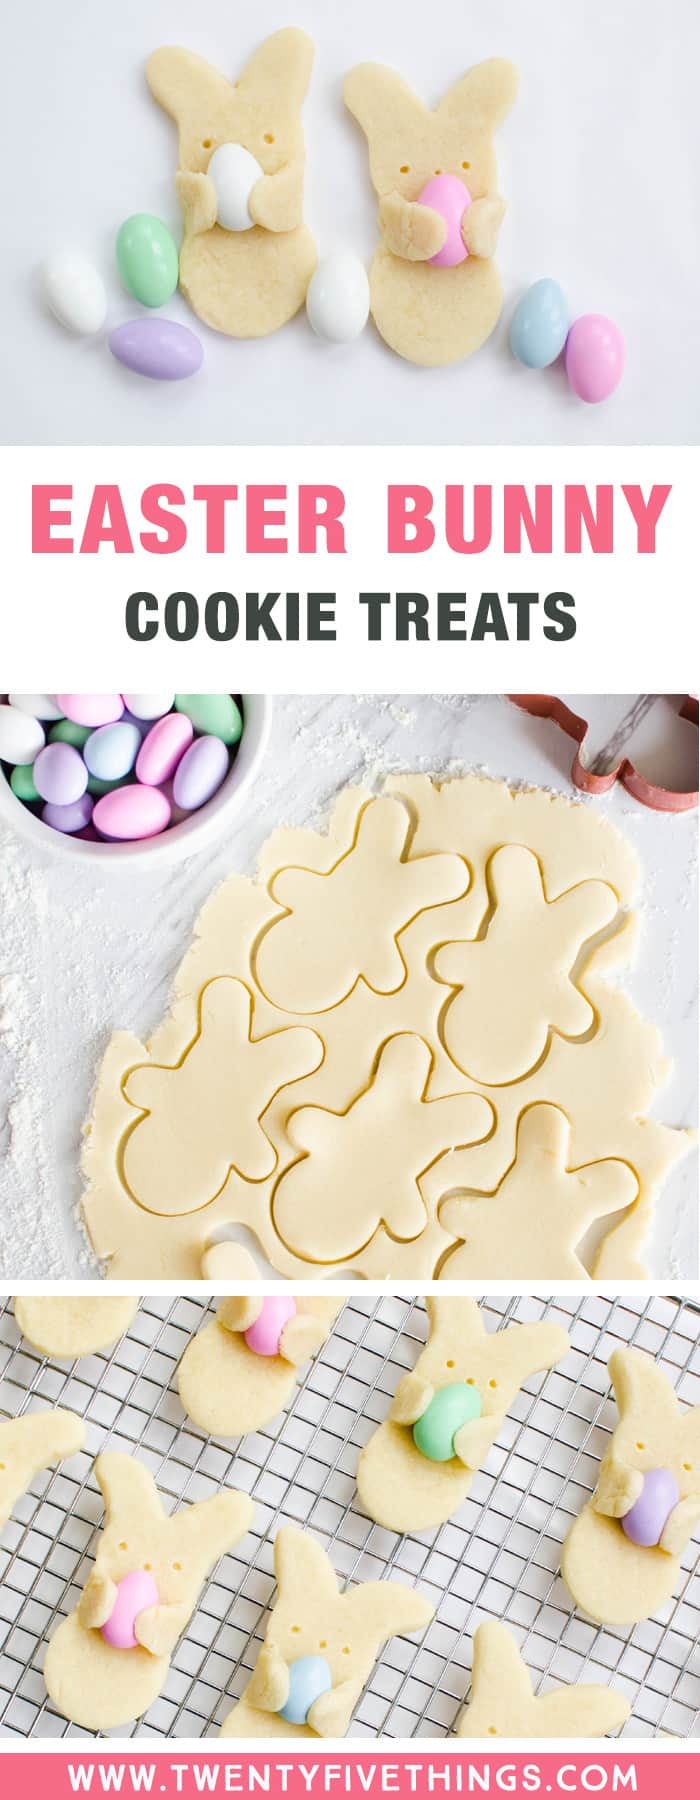 These Easter bunny cookies are so cute and look like they're carrying Easter eggs! Learn how to make these fun and tasty Easter treats for kid, or bake them up for your Easter party this year!